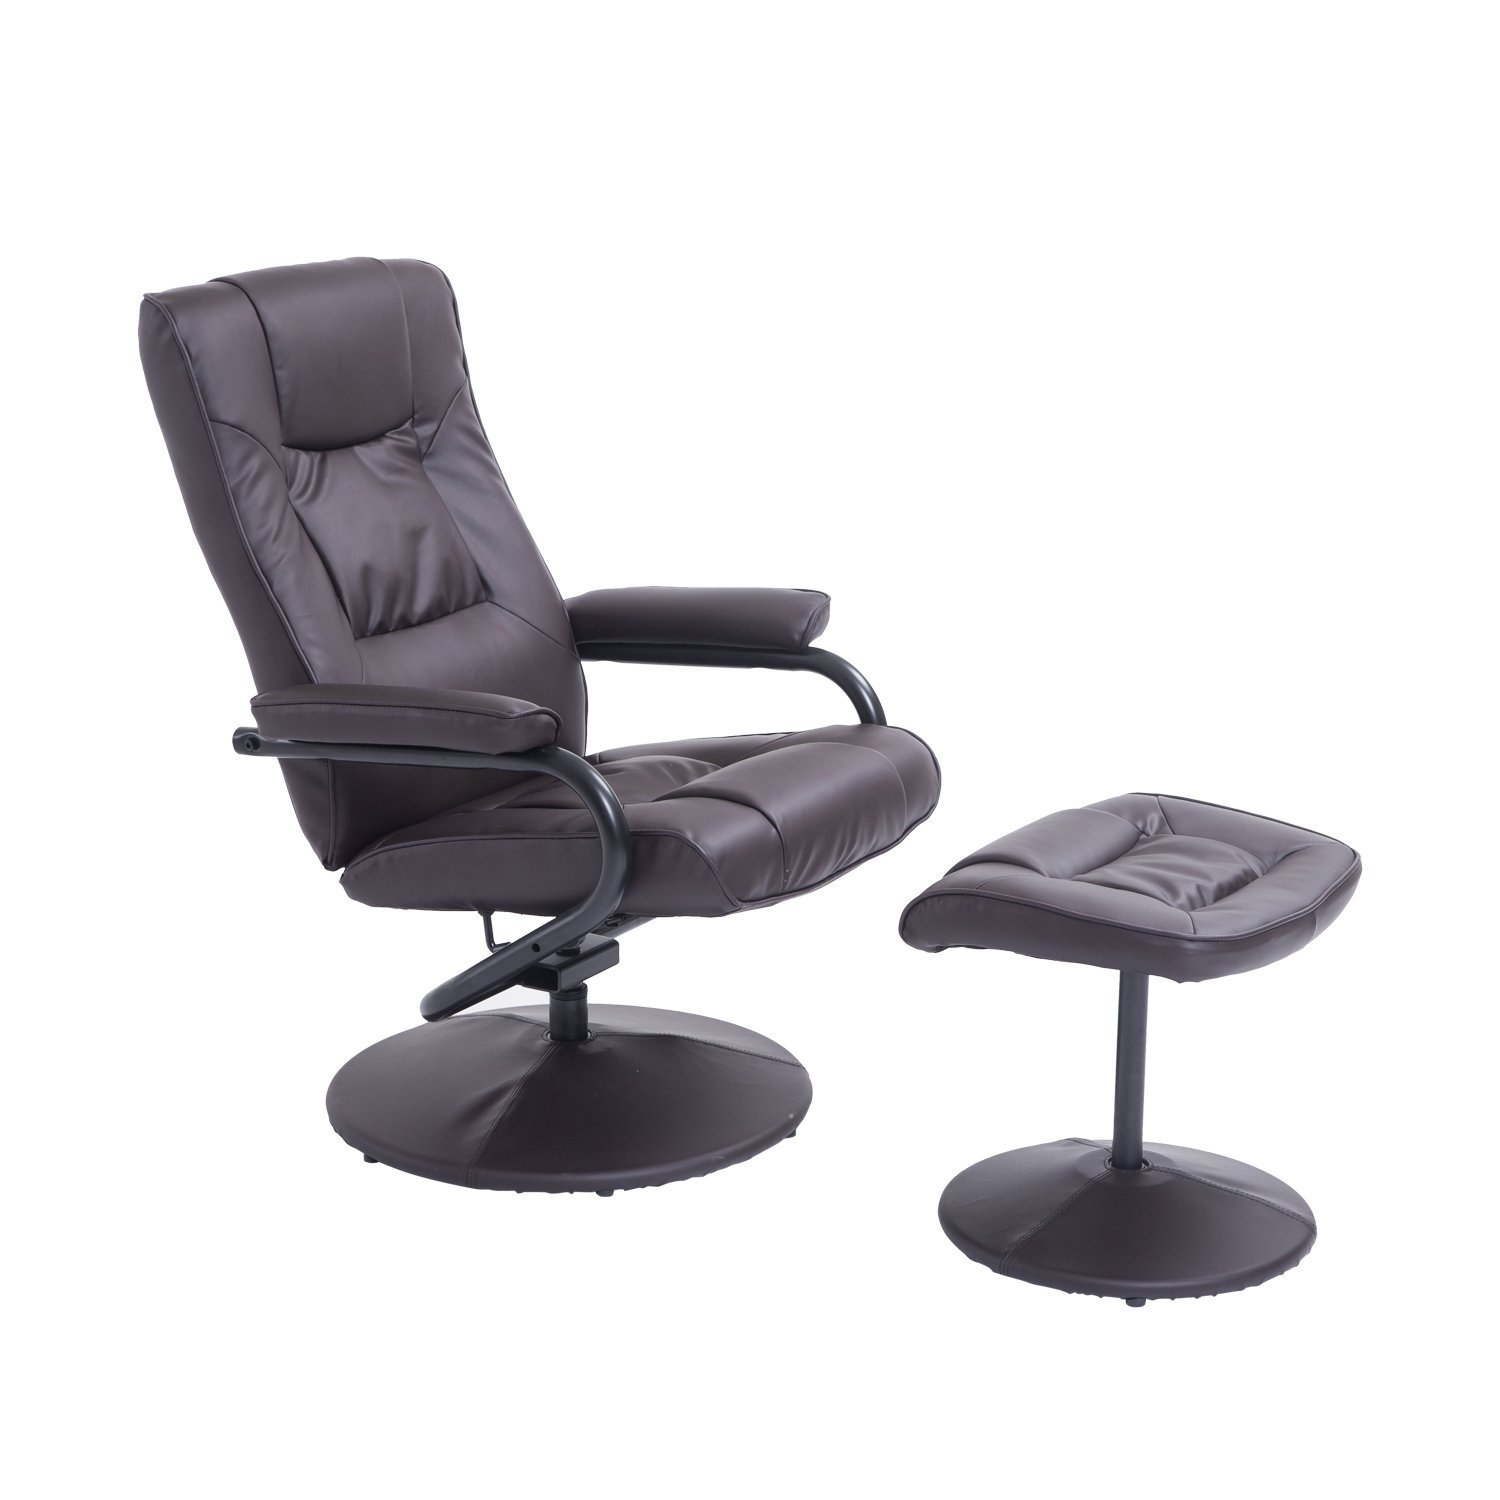 HOMCOM Executive Recliner Chair High Back Swivel Armchair Lounge Seat W/  Footrest Stool (Brown